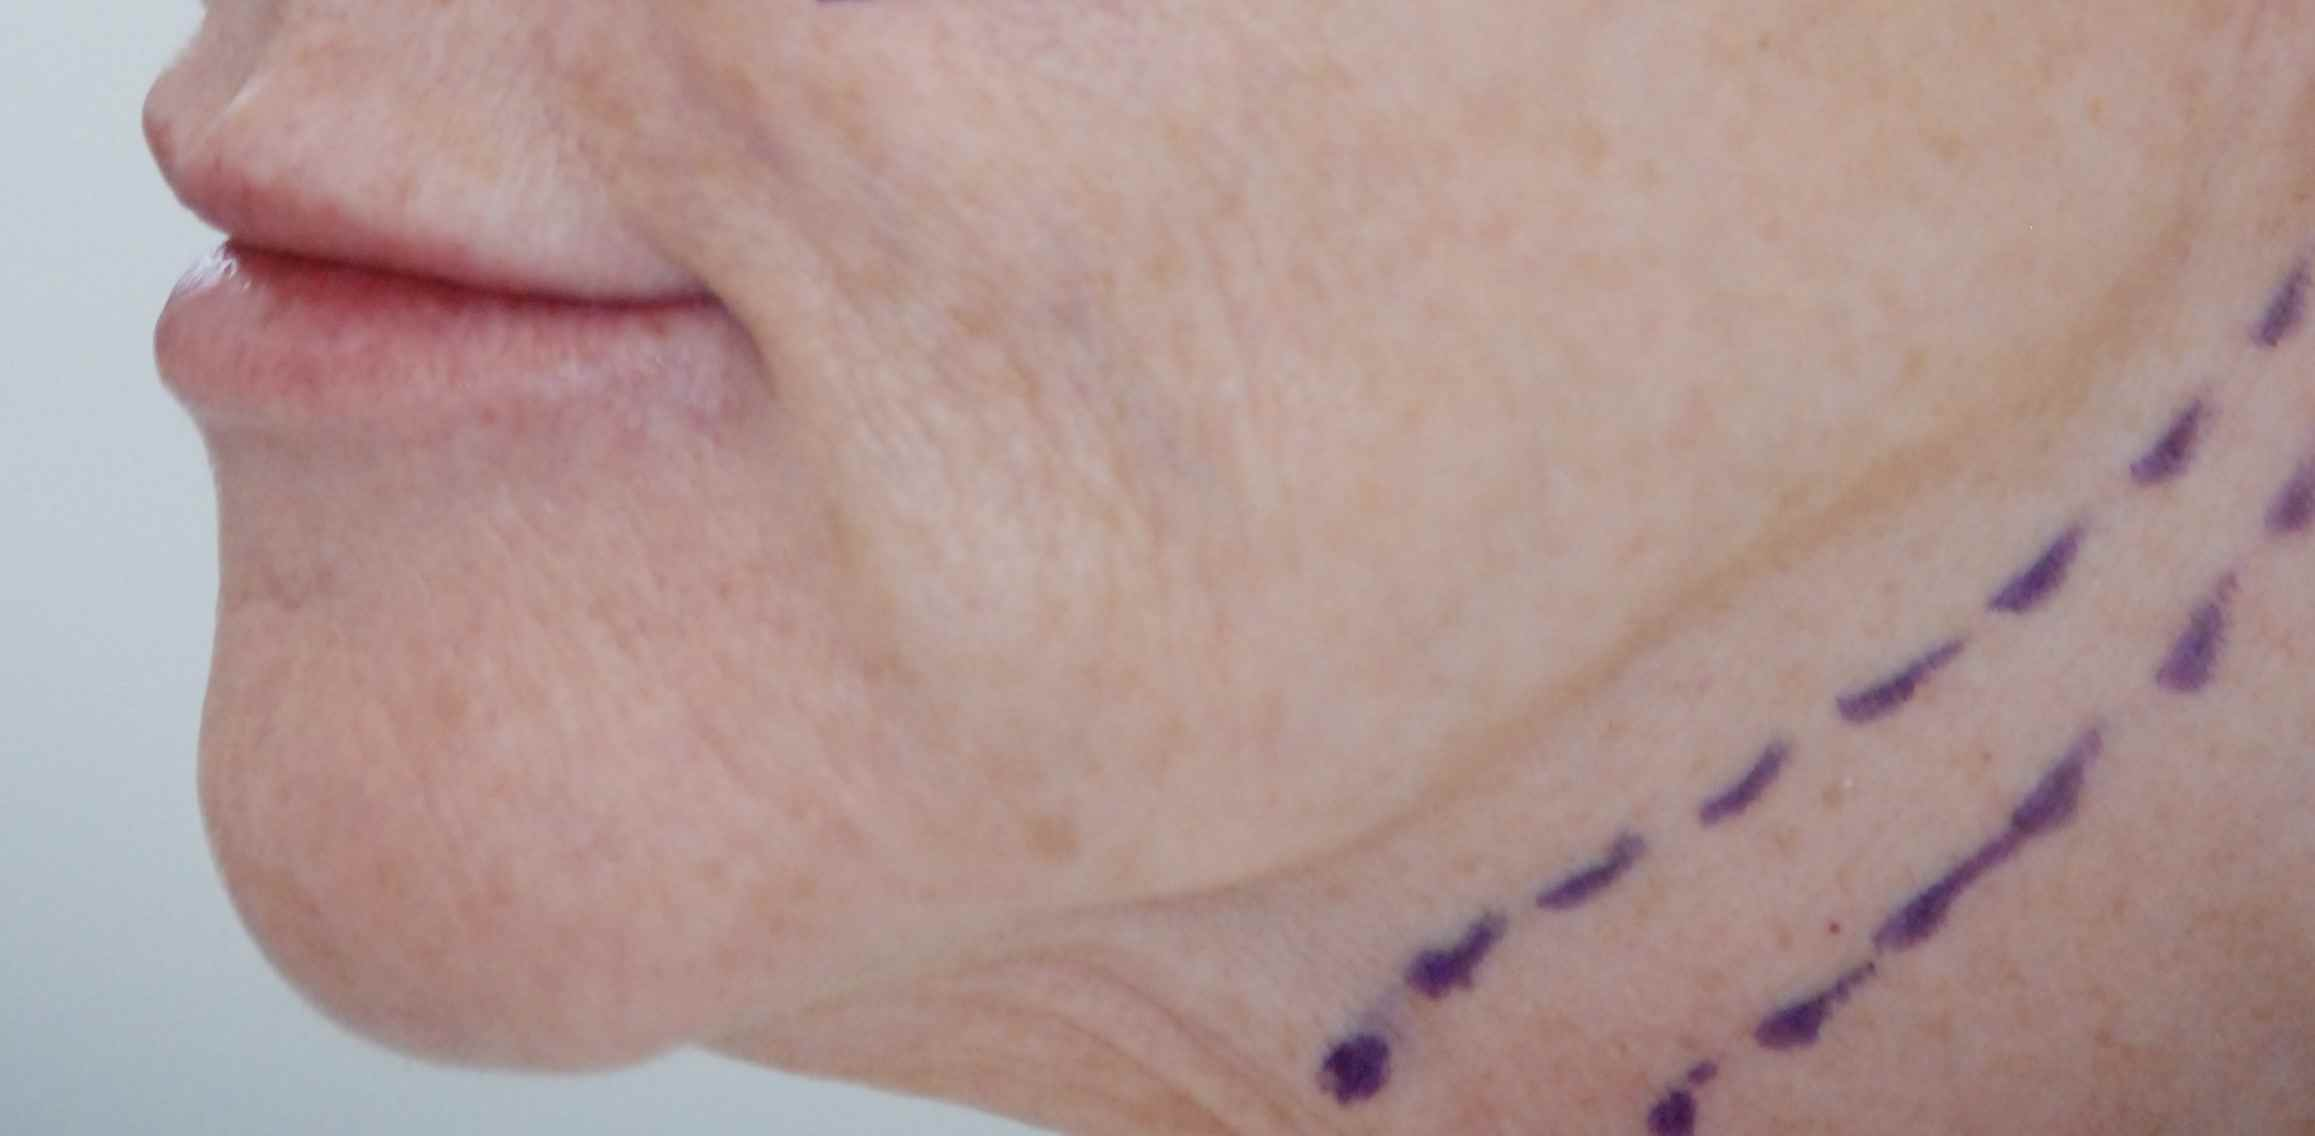 Minimally Invasive Face and Neck Lift Using Silhouette Coned Sutures